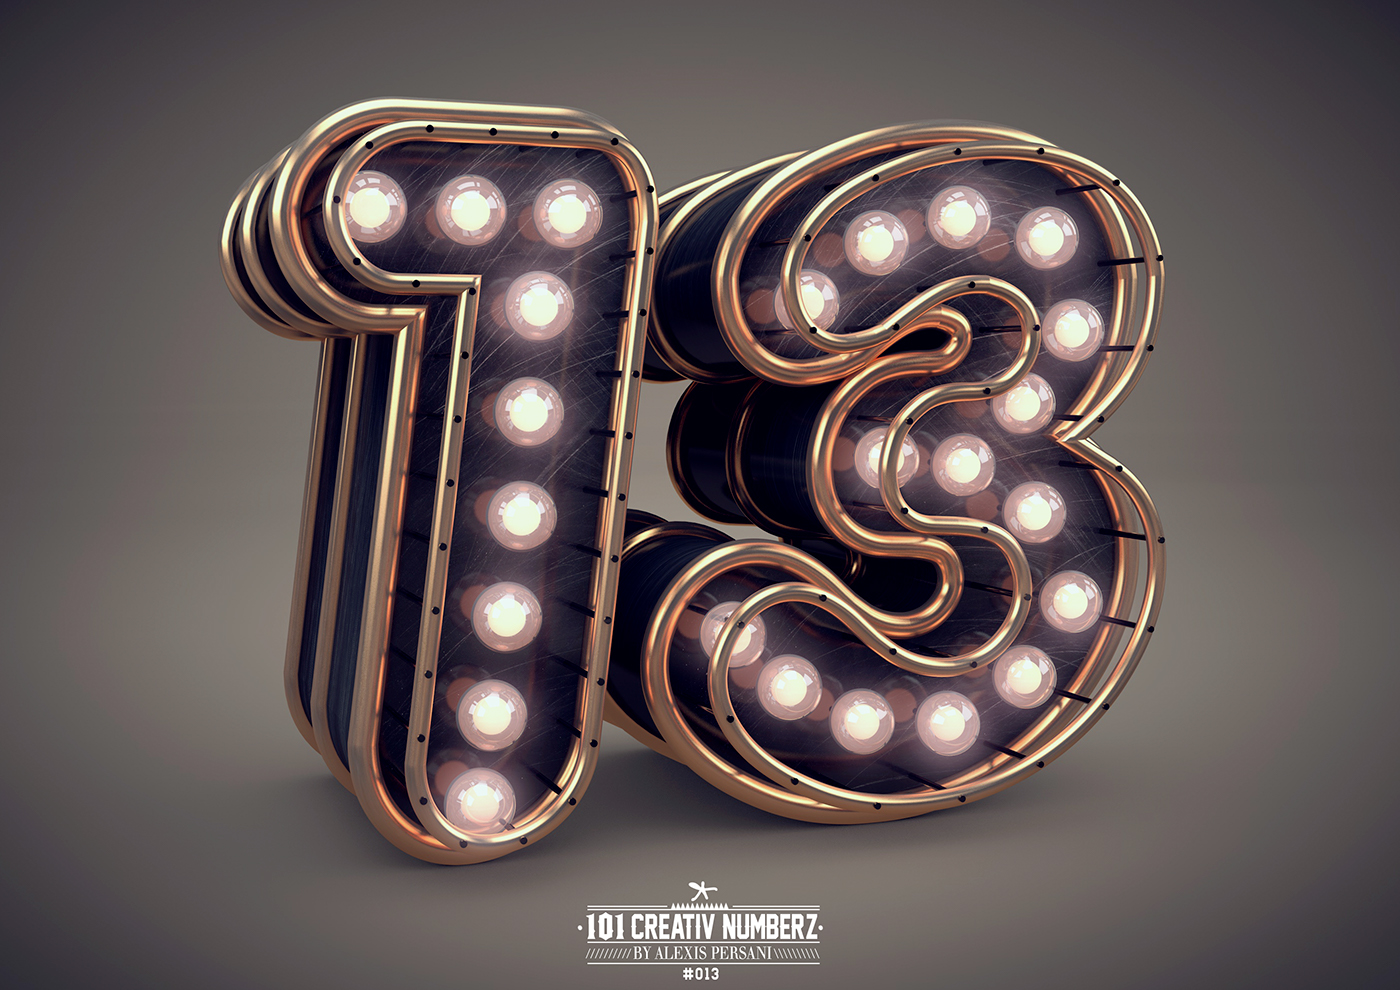 Outstanding 101 Creative Numbers Typography by Alexis Persani 12